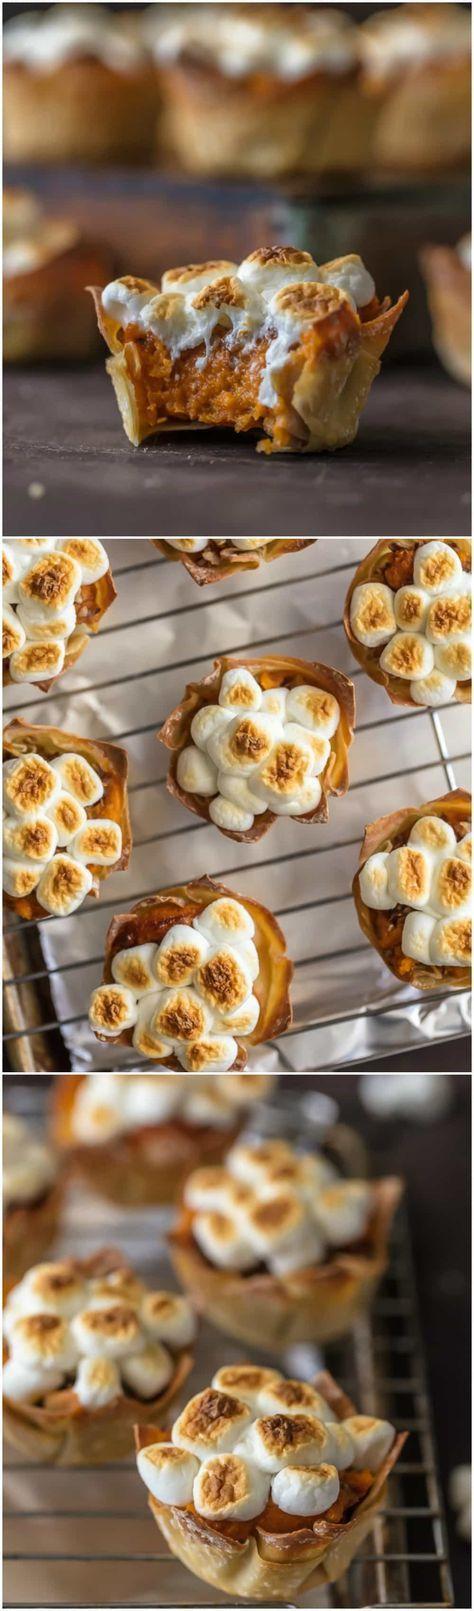 Wow your Thanksgiving guests with MINI SWEET POTATO SOUFFLE CUPS! It doesn't get cuter than wonton cups stuffed with sweet potato souffle and topped with toasted marshmallows. via @beckygallhardin